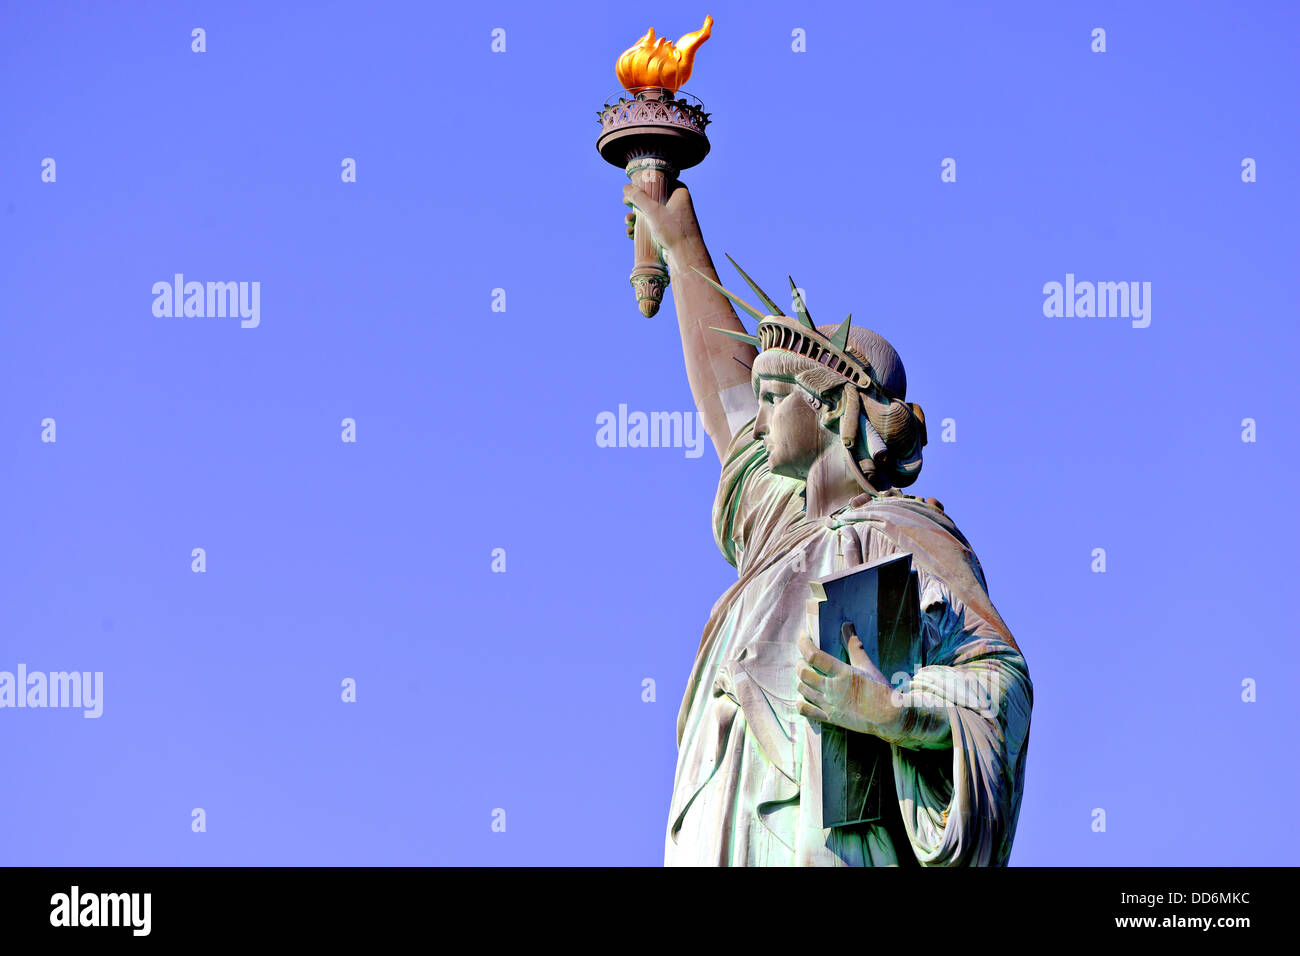 Freiheitsstatue in New York City. Stockbild